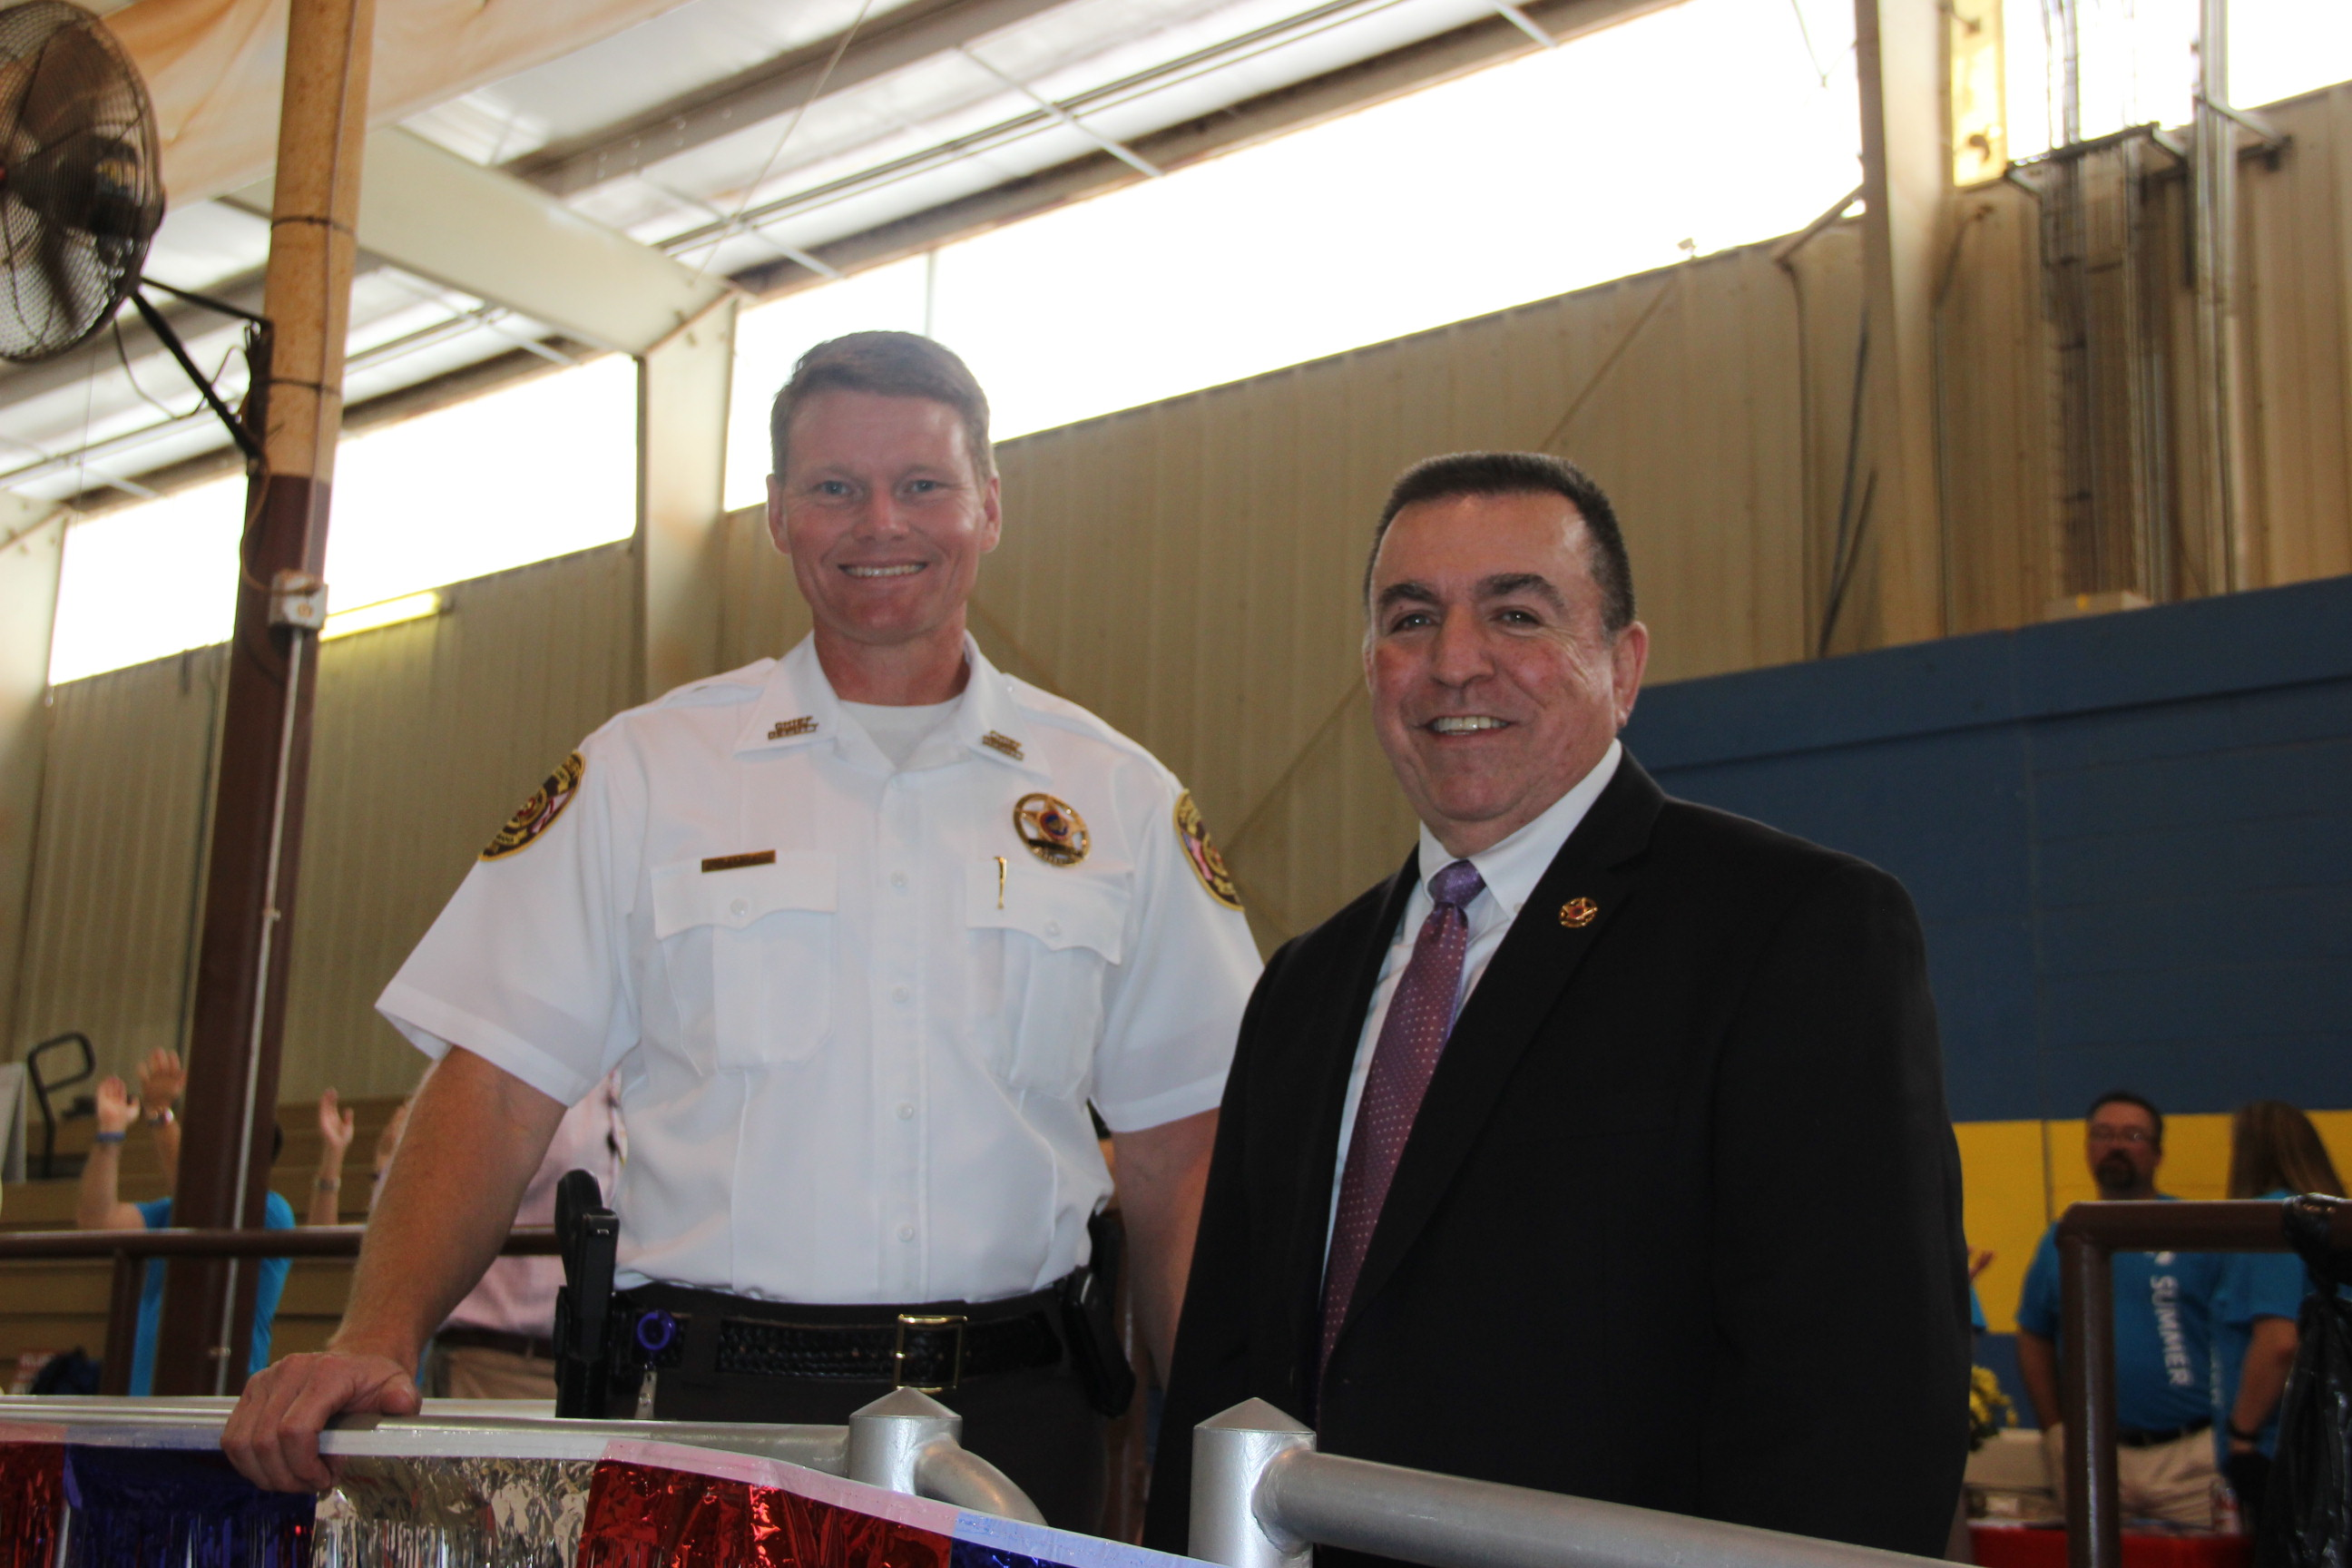 Image of Sheriff John Samaniego and Chief Deputy Chris George at the 2017 Senior Picnic